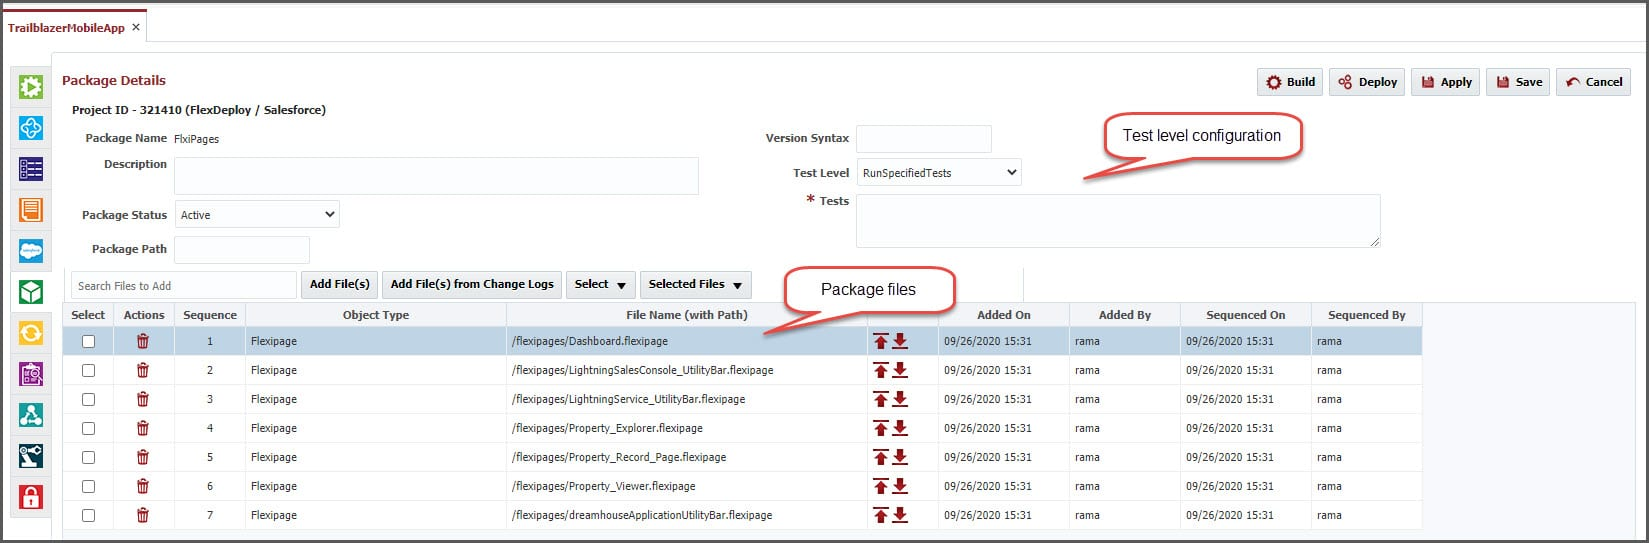 The Package Details screen of FlexDeploy